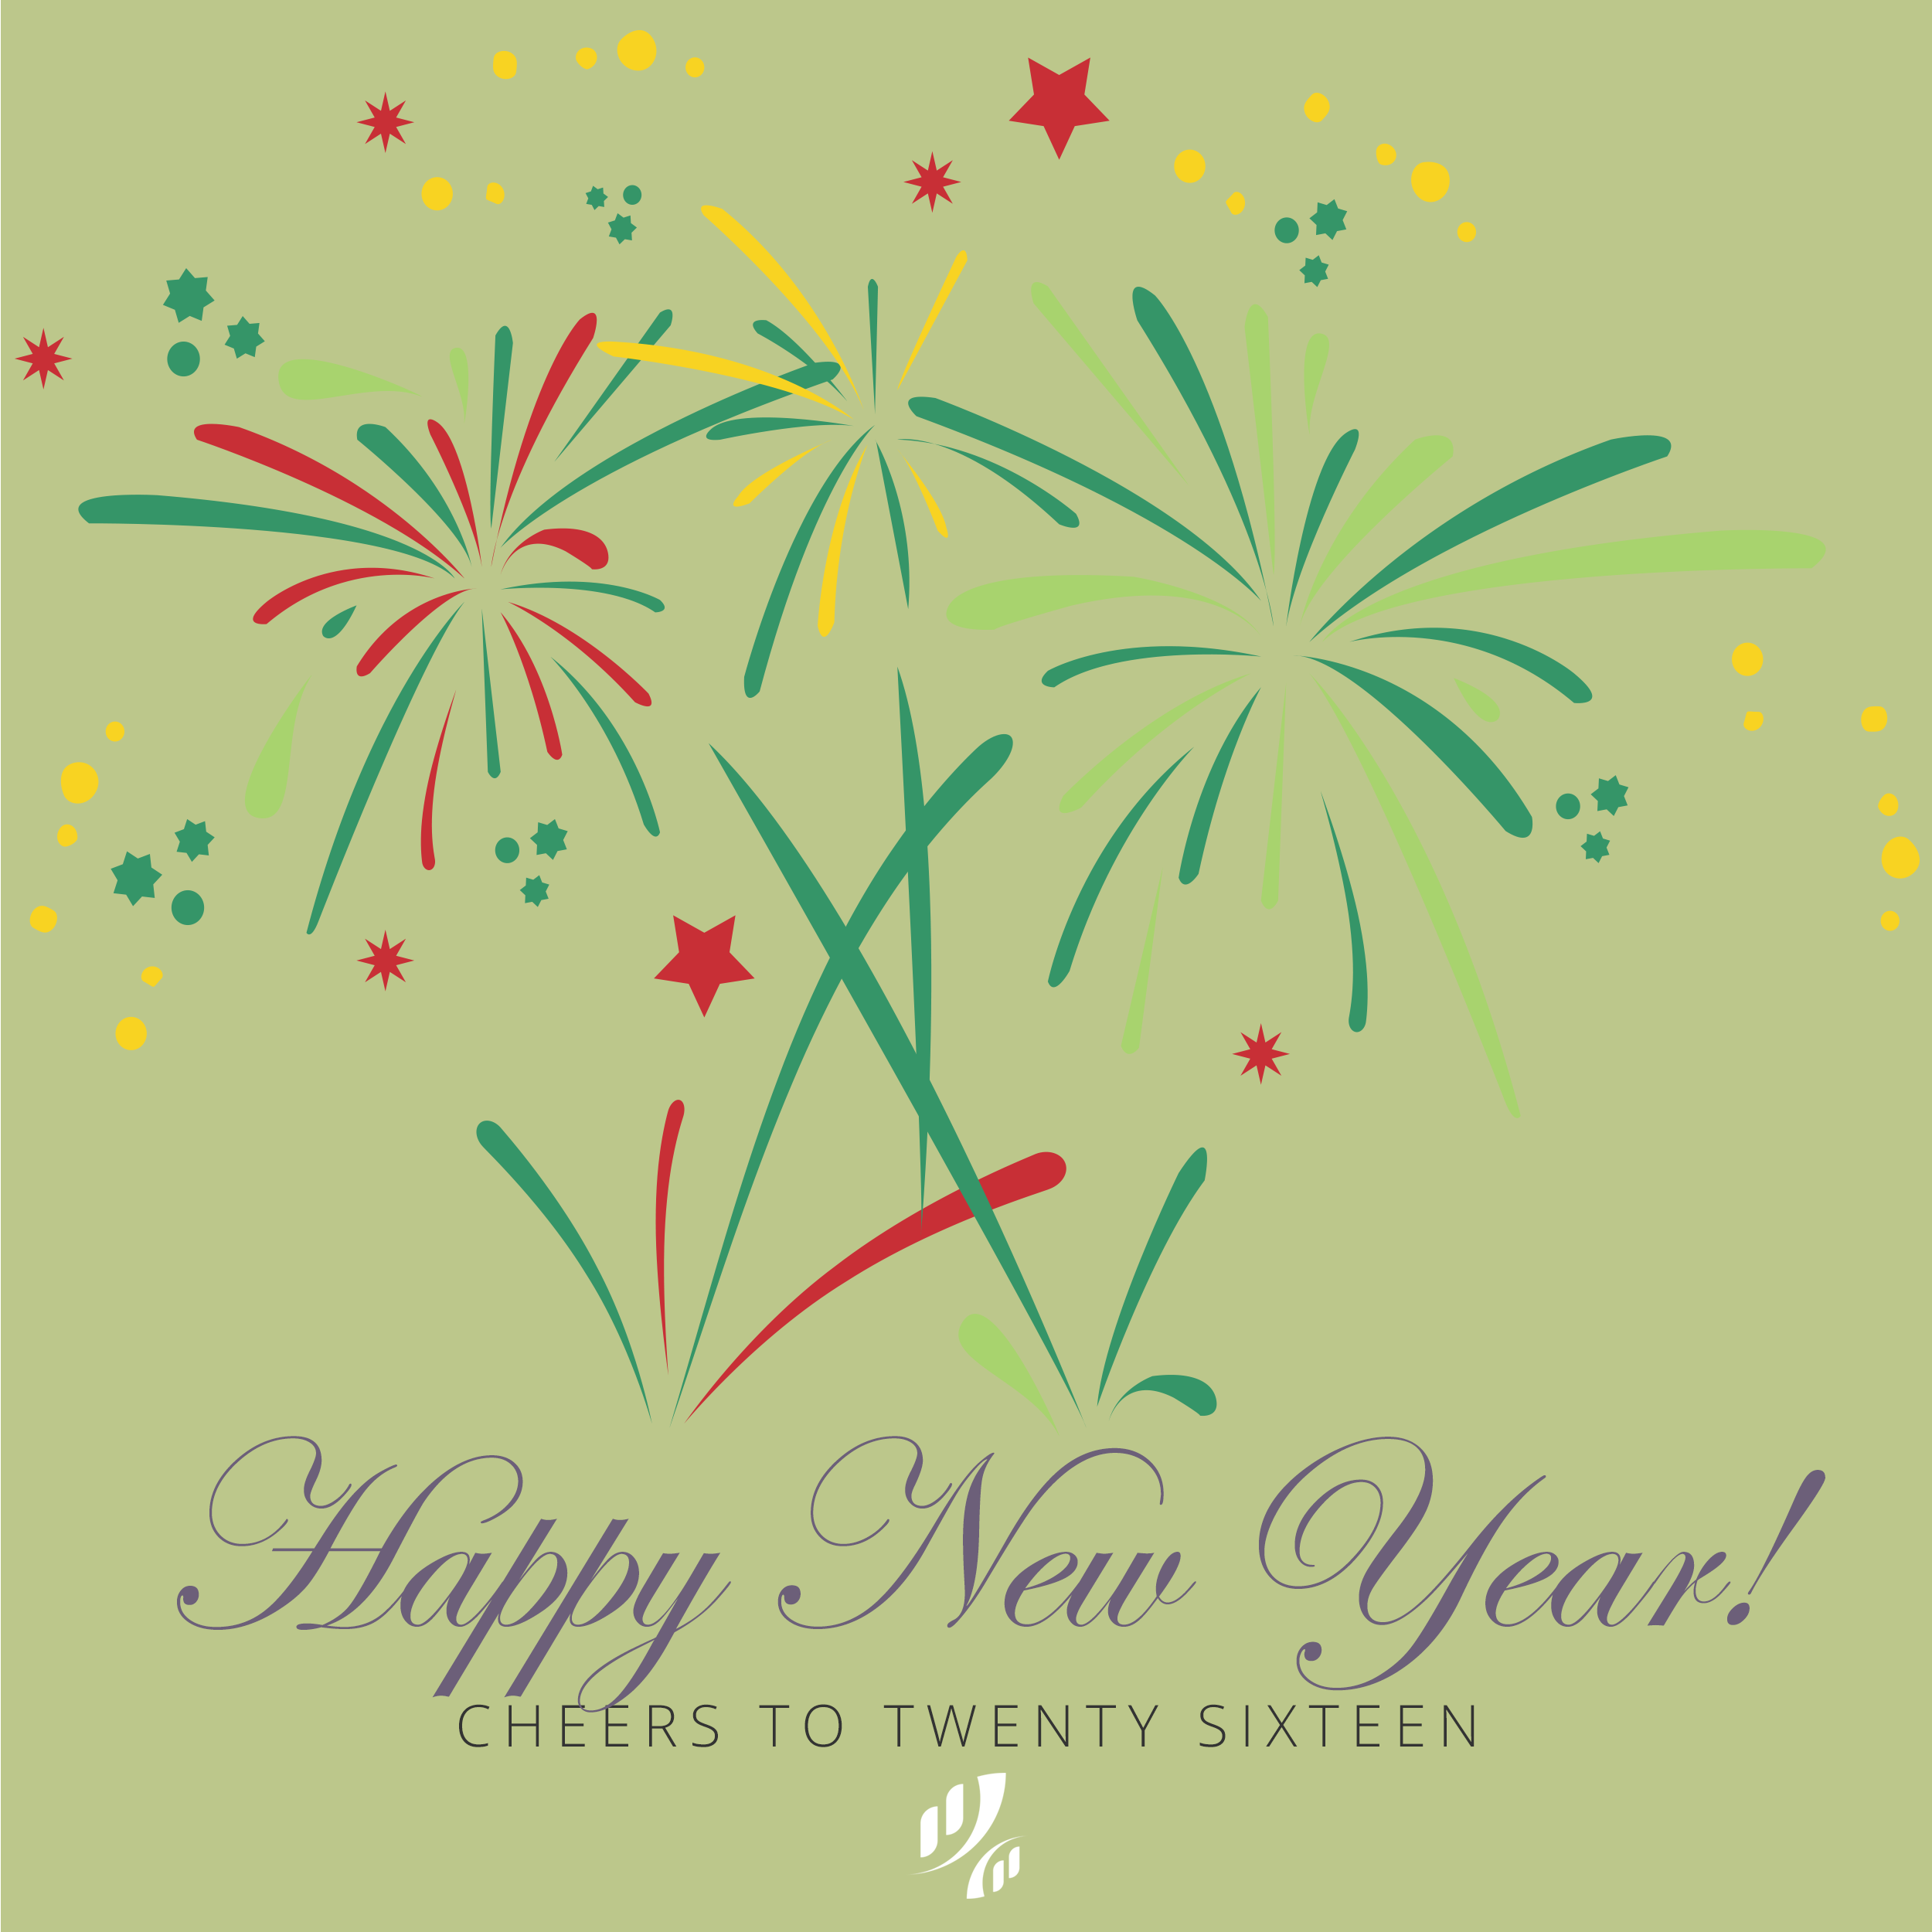 Happy New Year!   Thank you all for supporting small businesses like ours in #YVR.